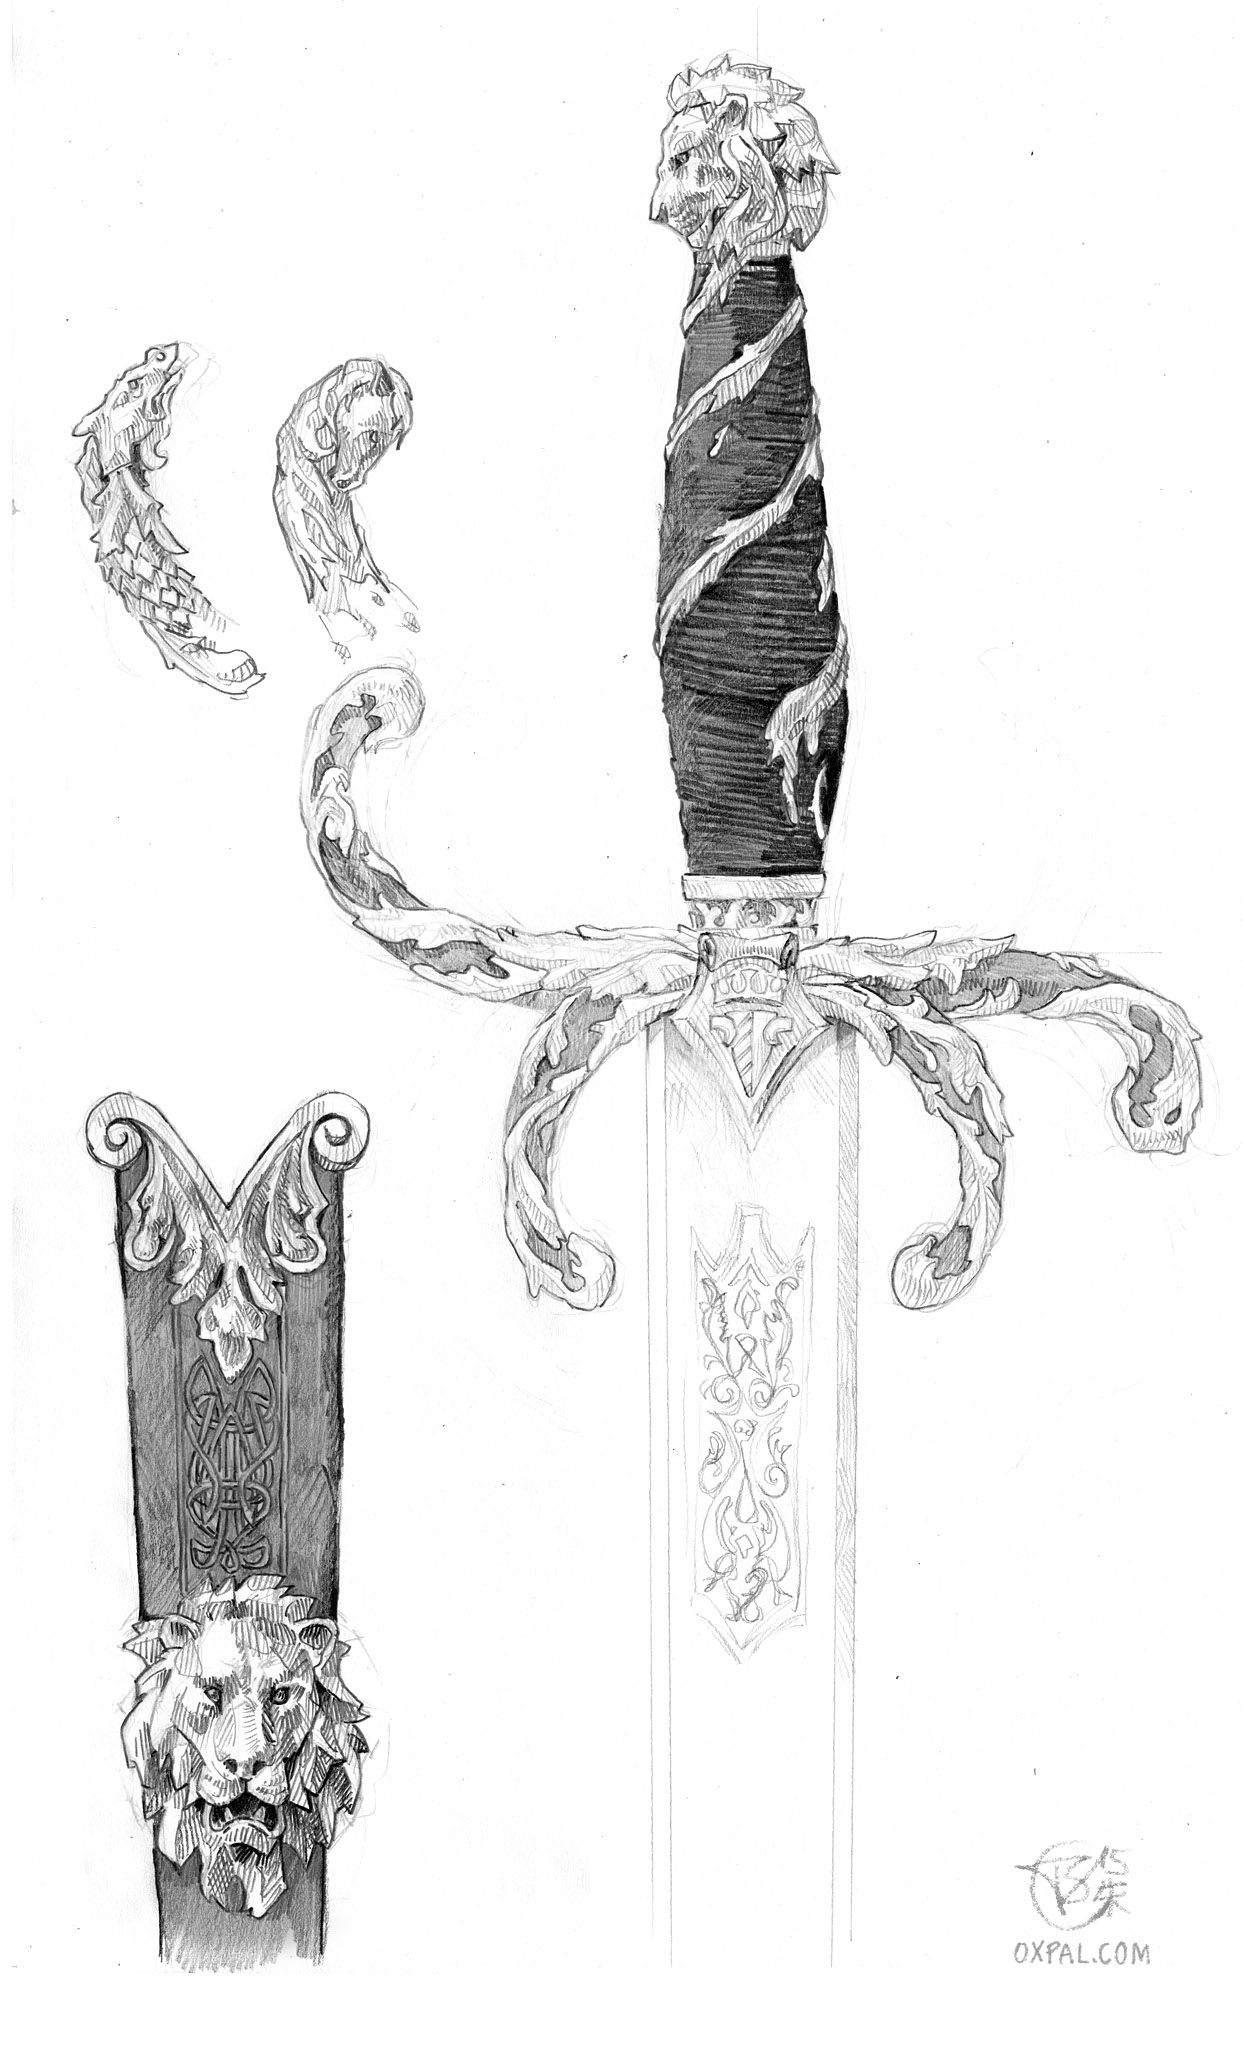 The Beauty and the Beast Movie Sword – Thomas Schmall